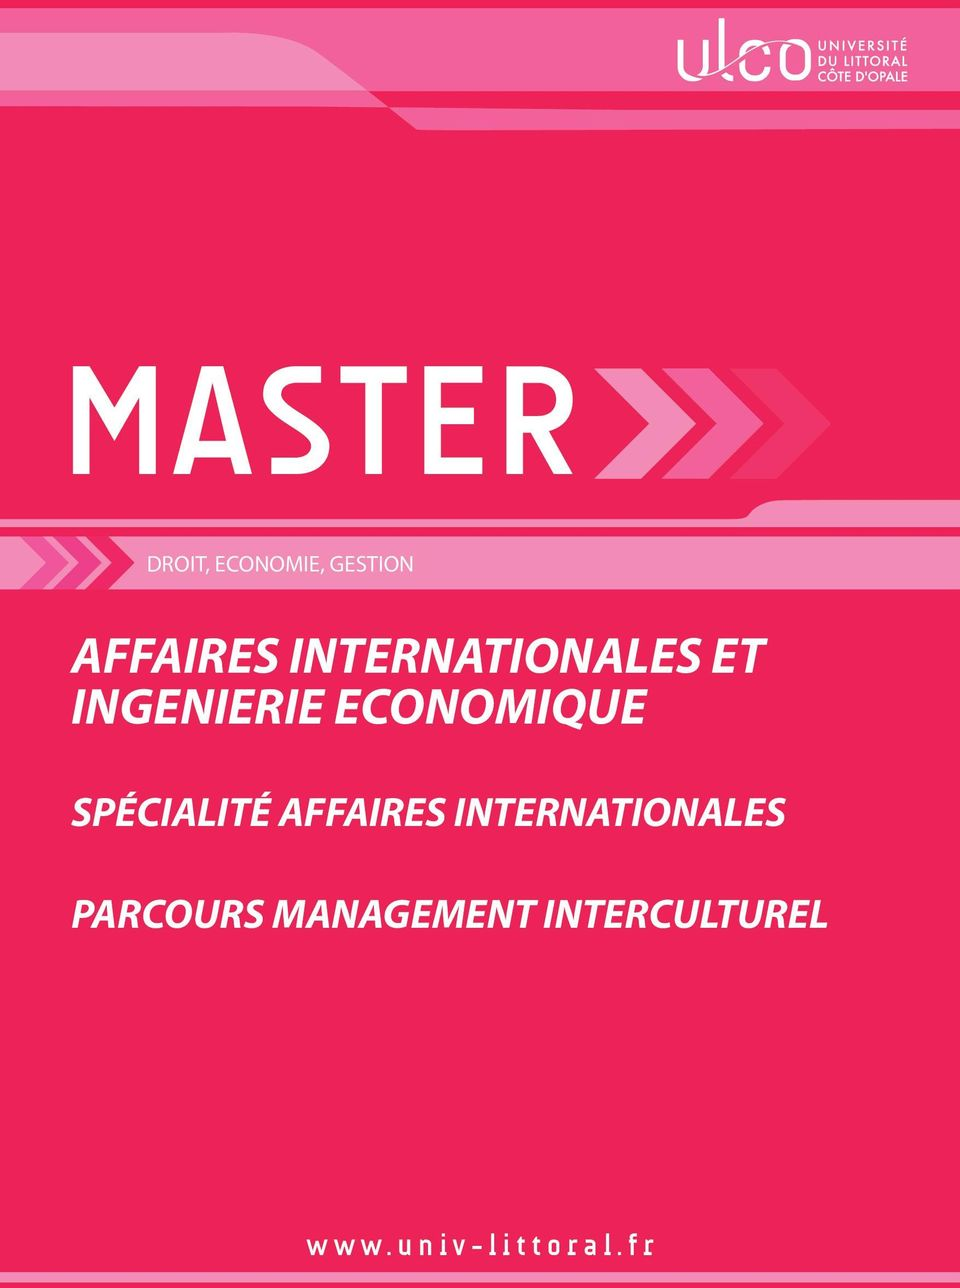 SPÉCIALITÉ AFFAIRES INTERNATIONALES